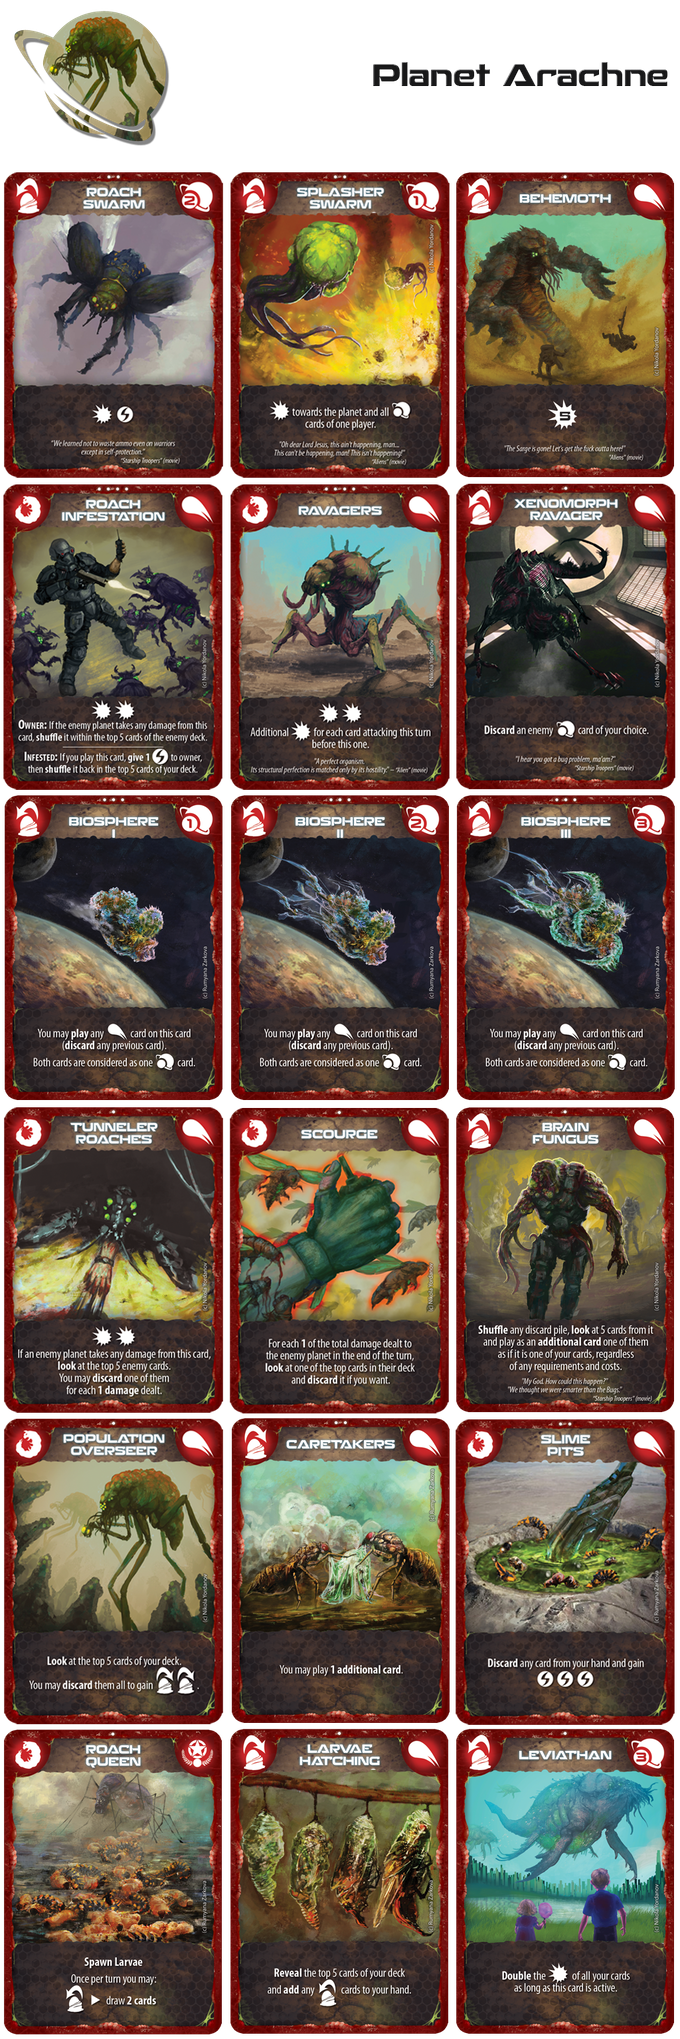 See the previously unreleased Caretakers card!